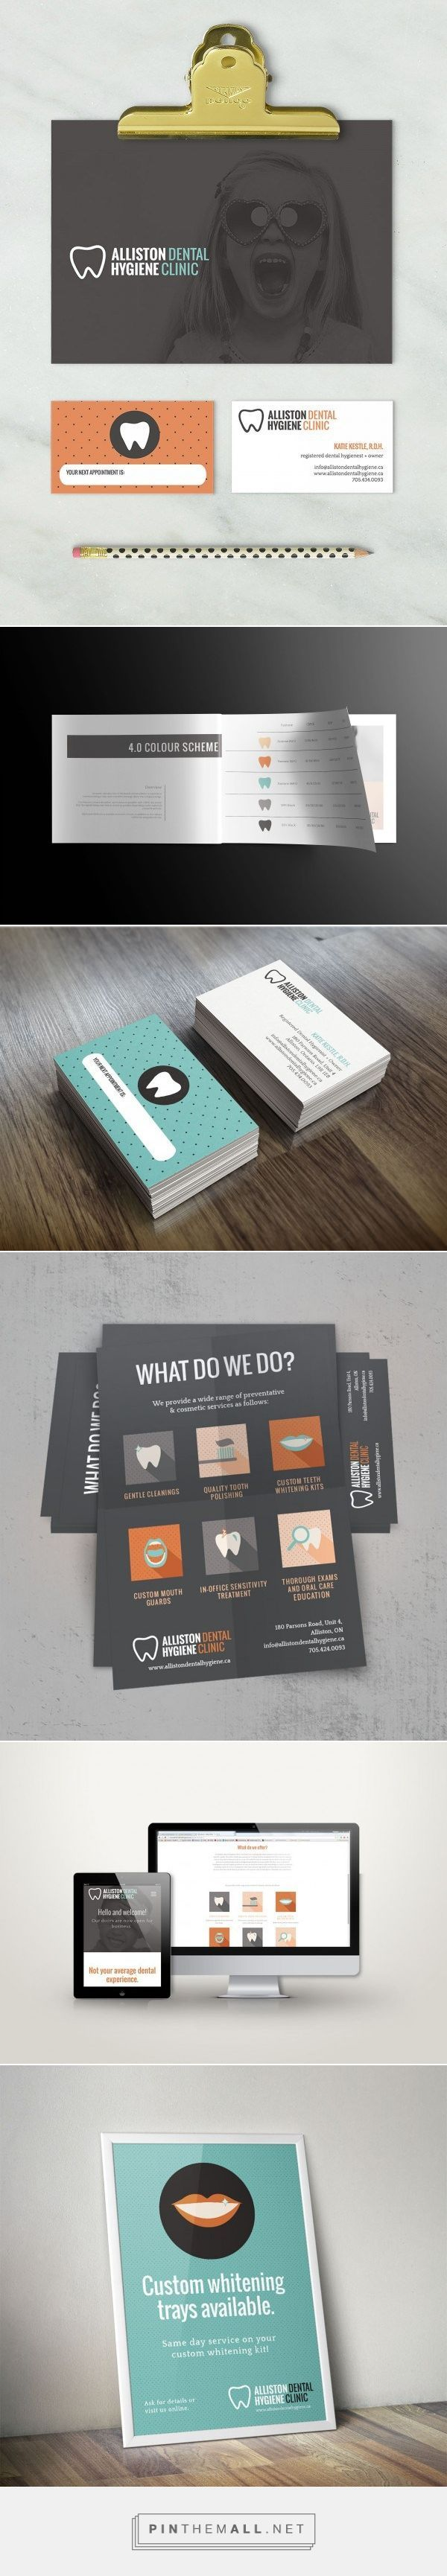 Alliston Dental Hygiene Clinic Brand Identity - Click the image for other brand inspiration and design services! Created via https://pinthemall.net